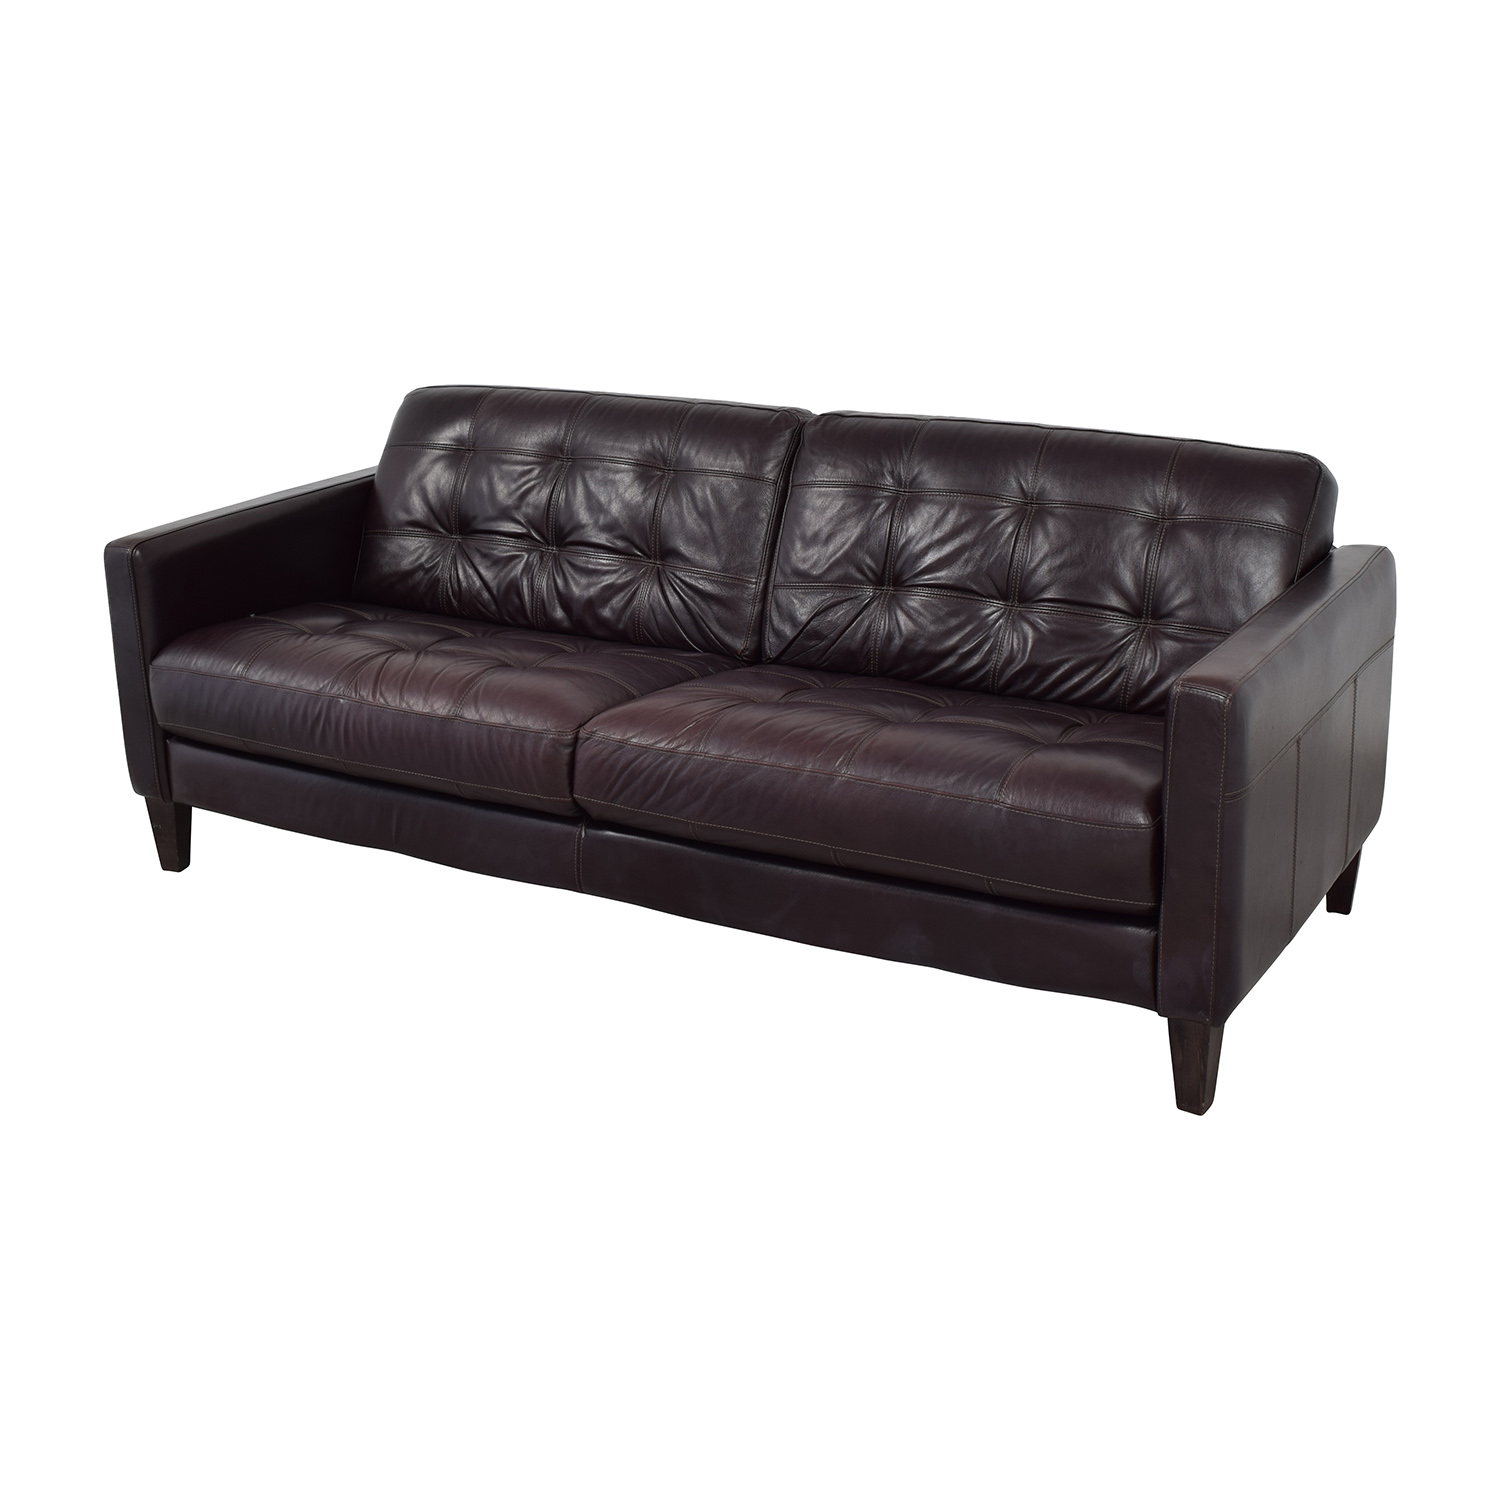 59 Off Macy 39 S Macy 39 S Milan Leather Sofa Sofas